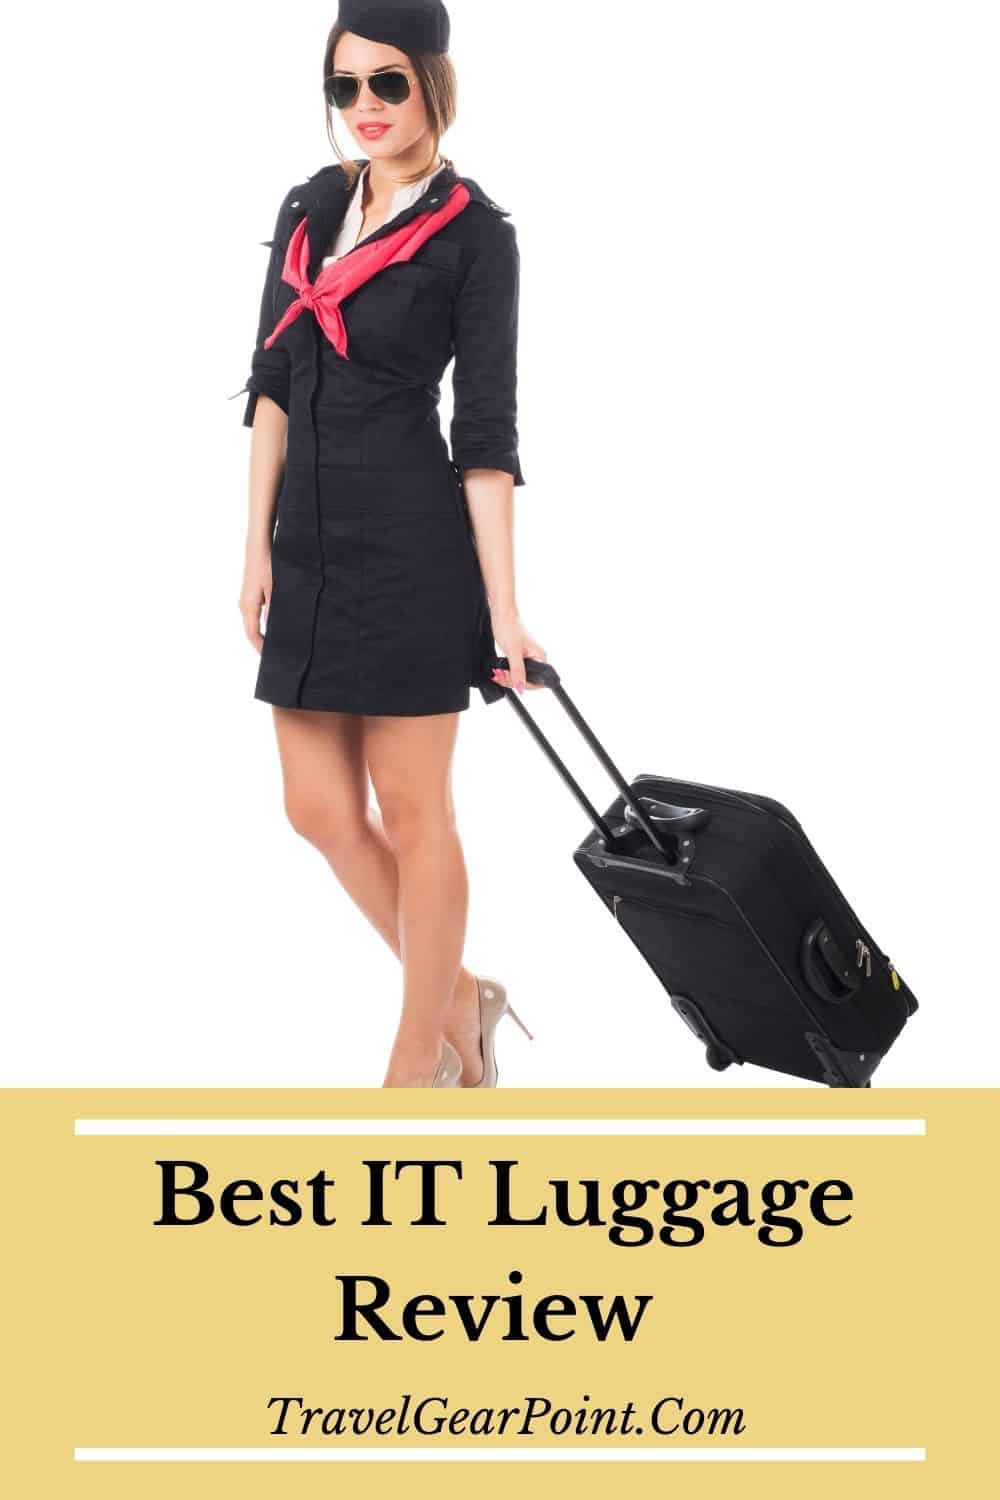 Best IT Luggage Review